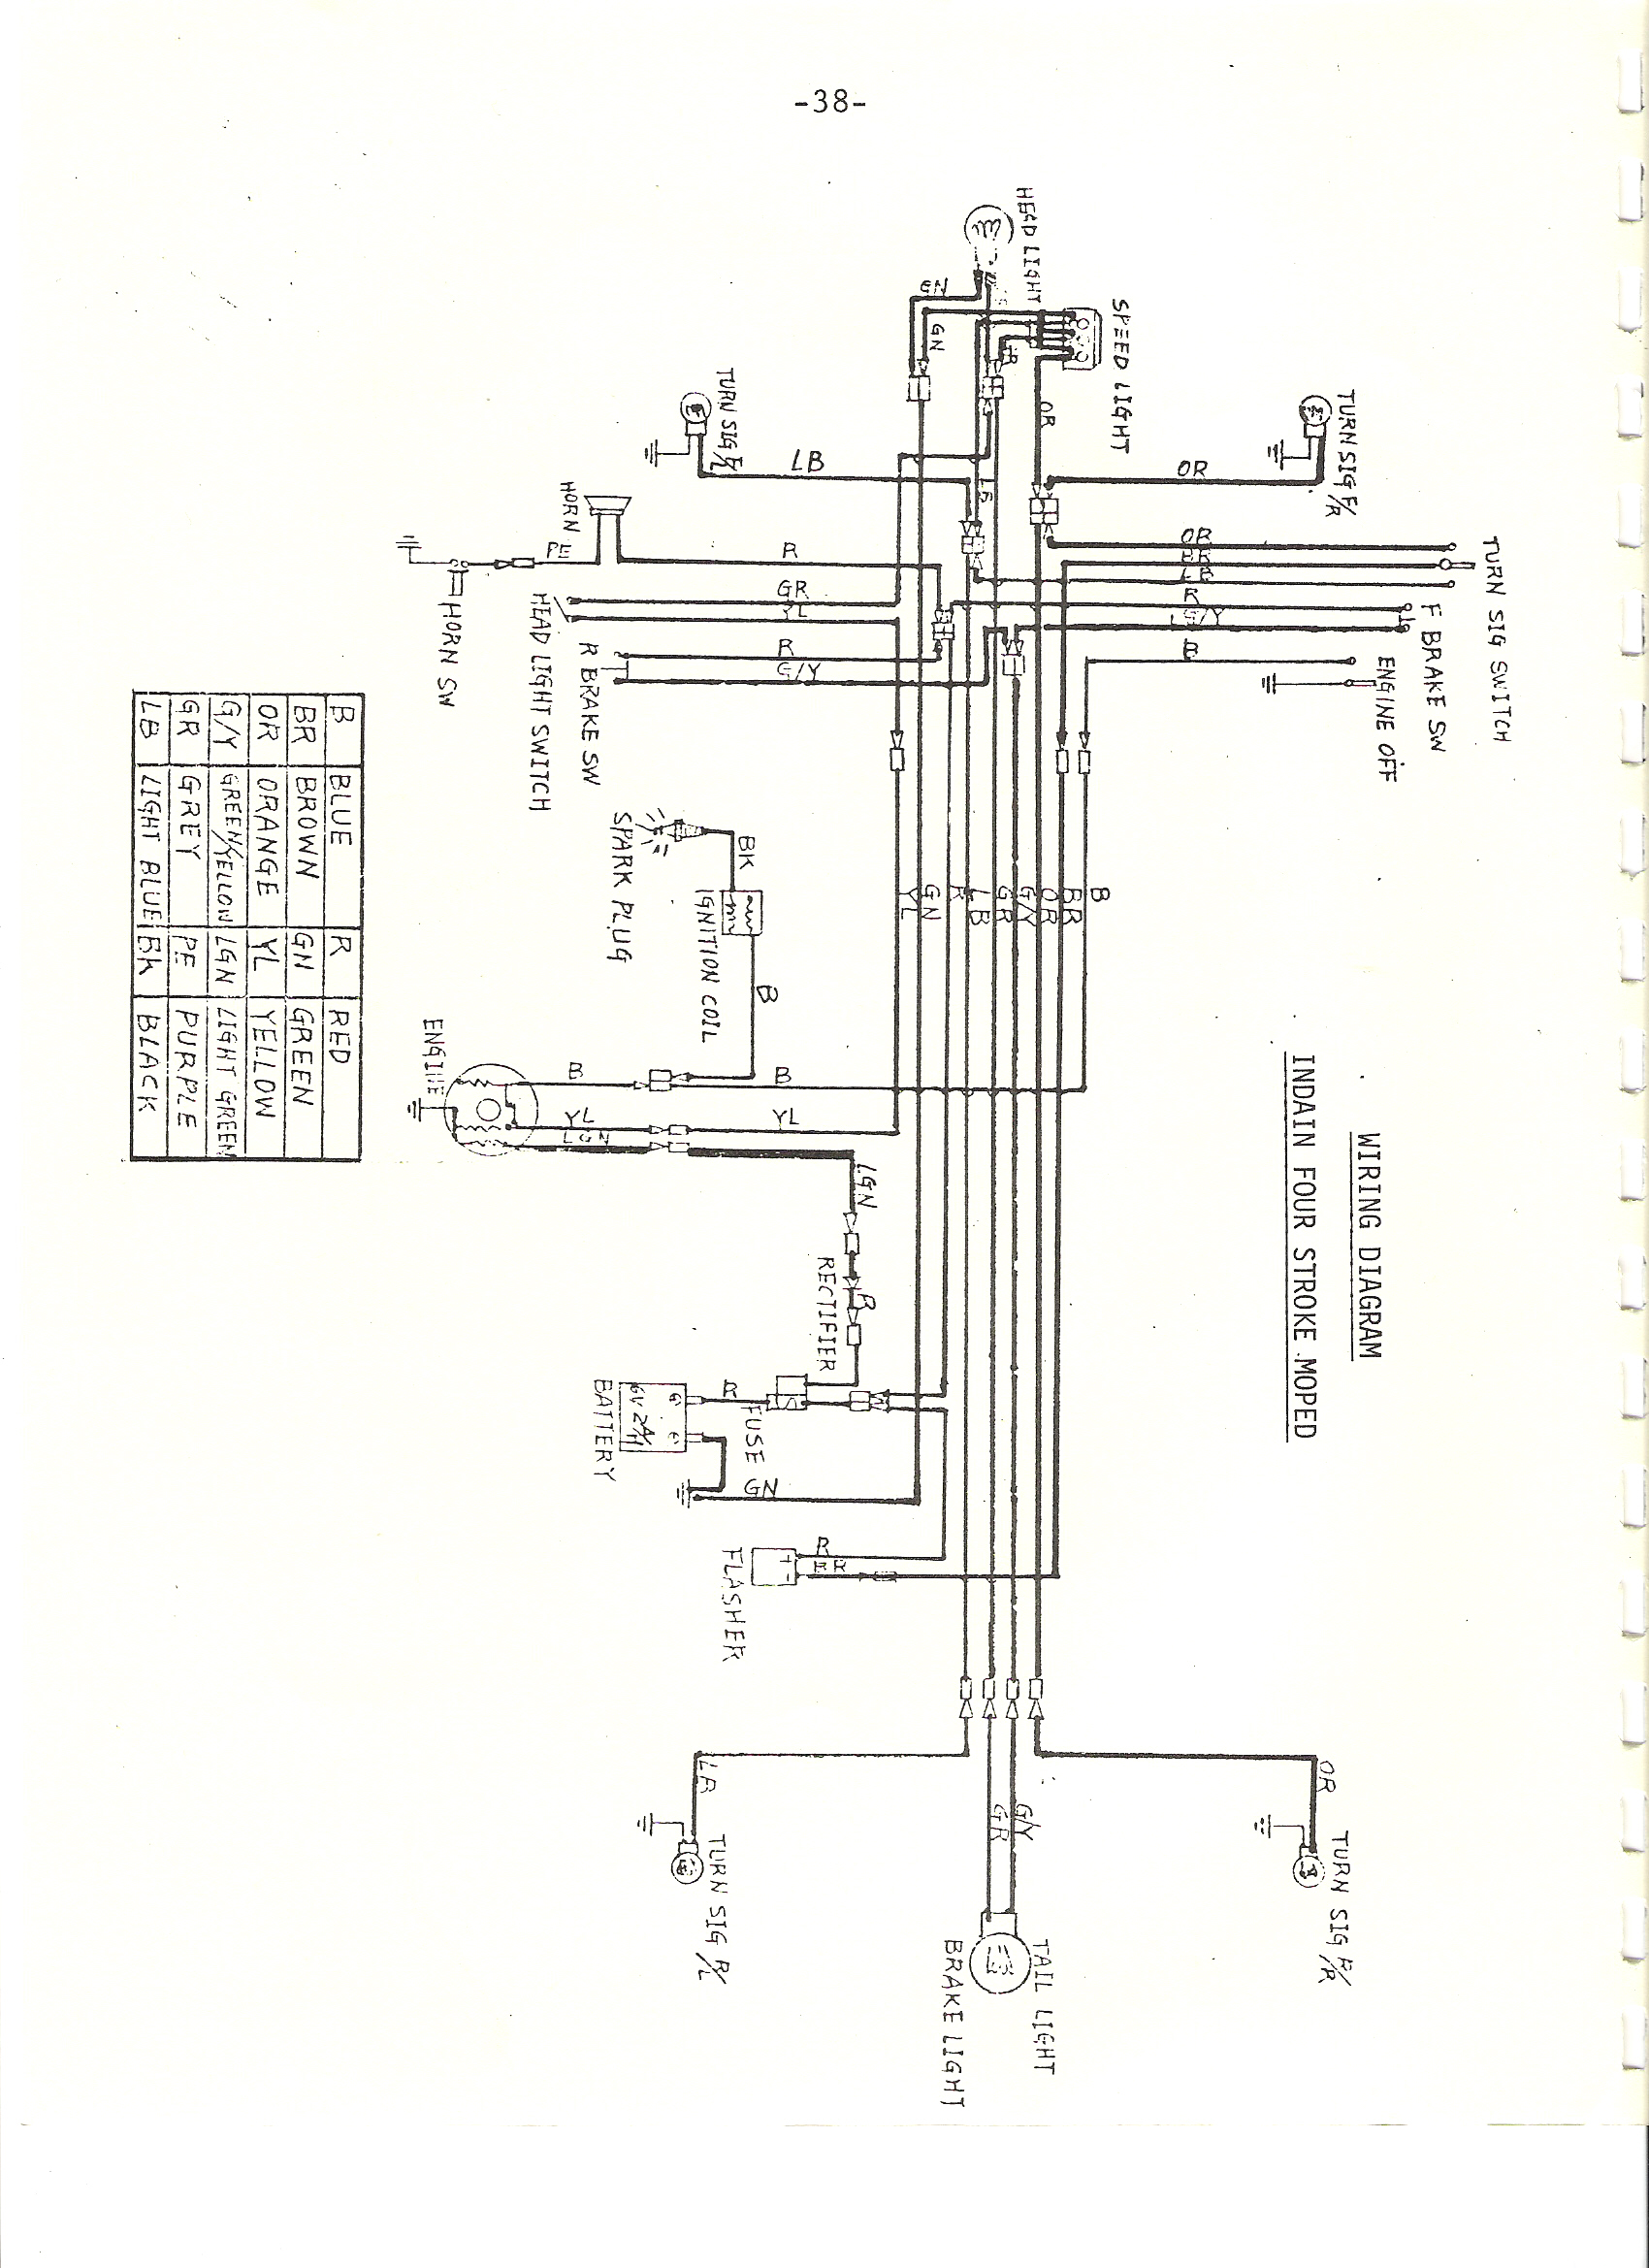 1947 indian chief wiring diagram indian wiring diagram #8